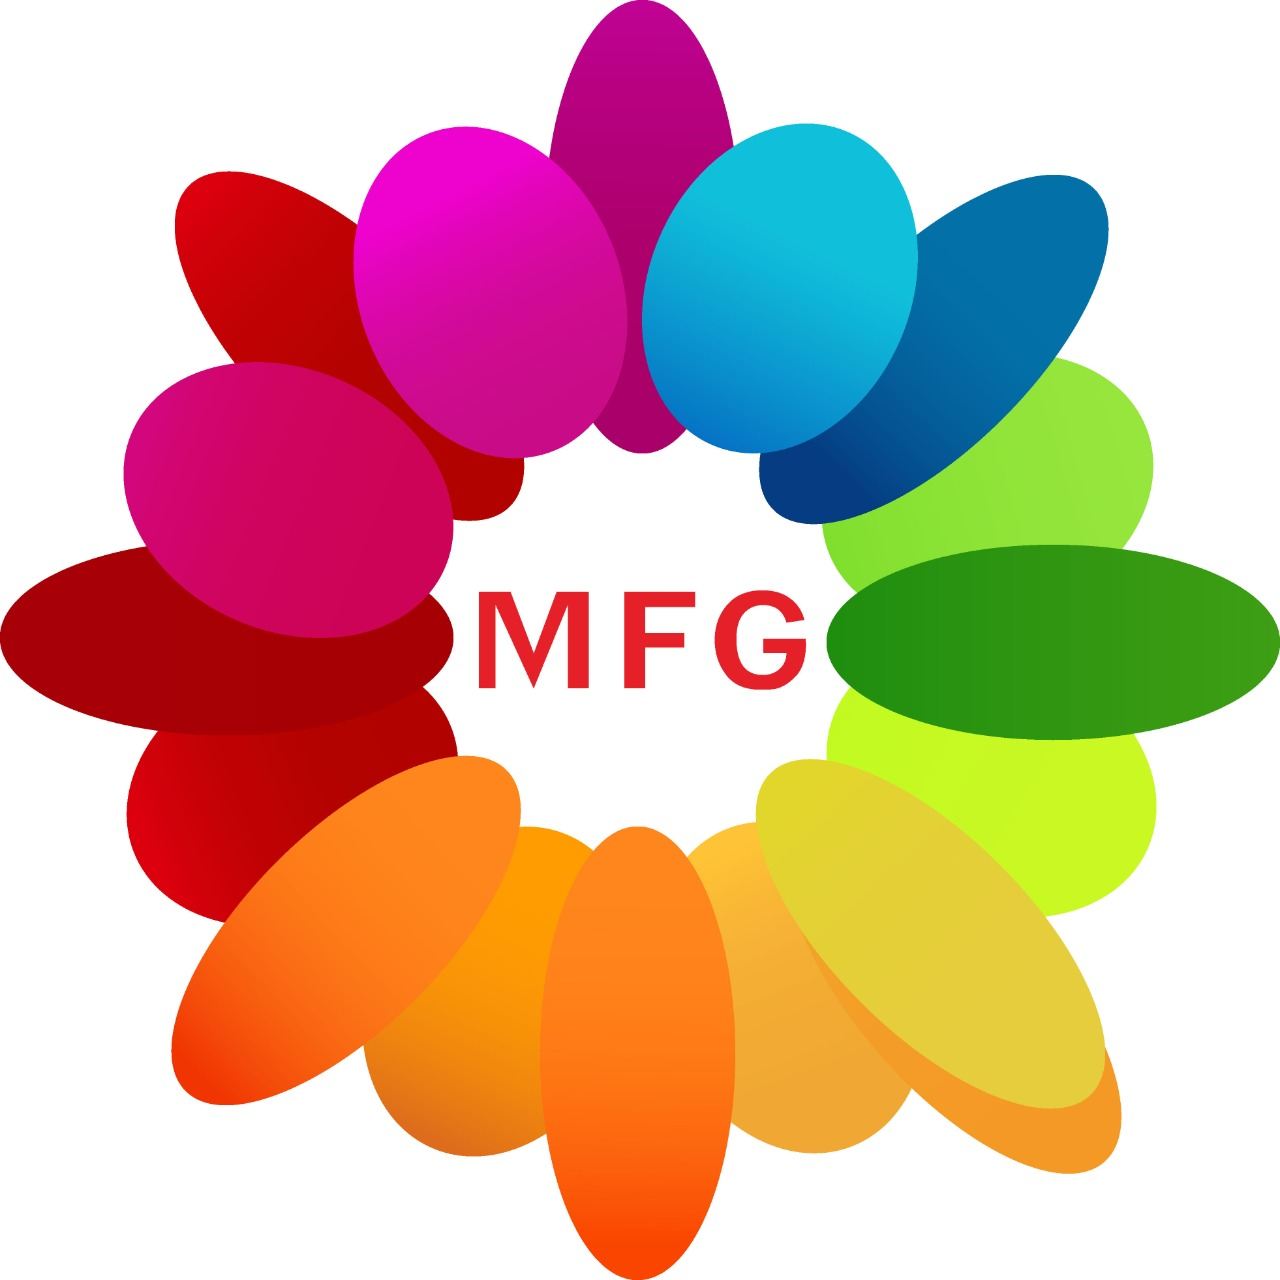 Exclusive lilies 2 feet height arrangement with Basket of Half kg almonds